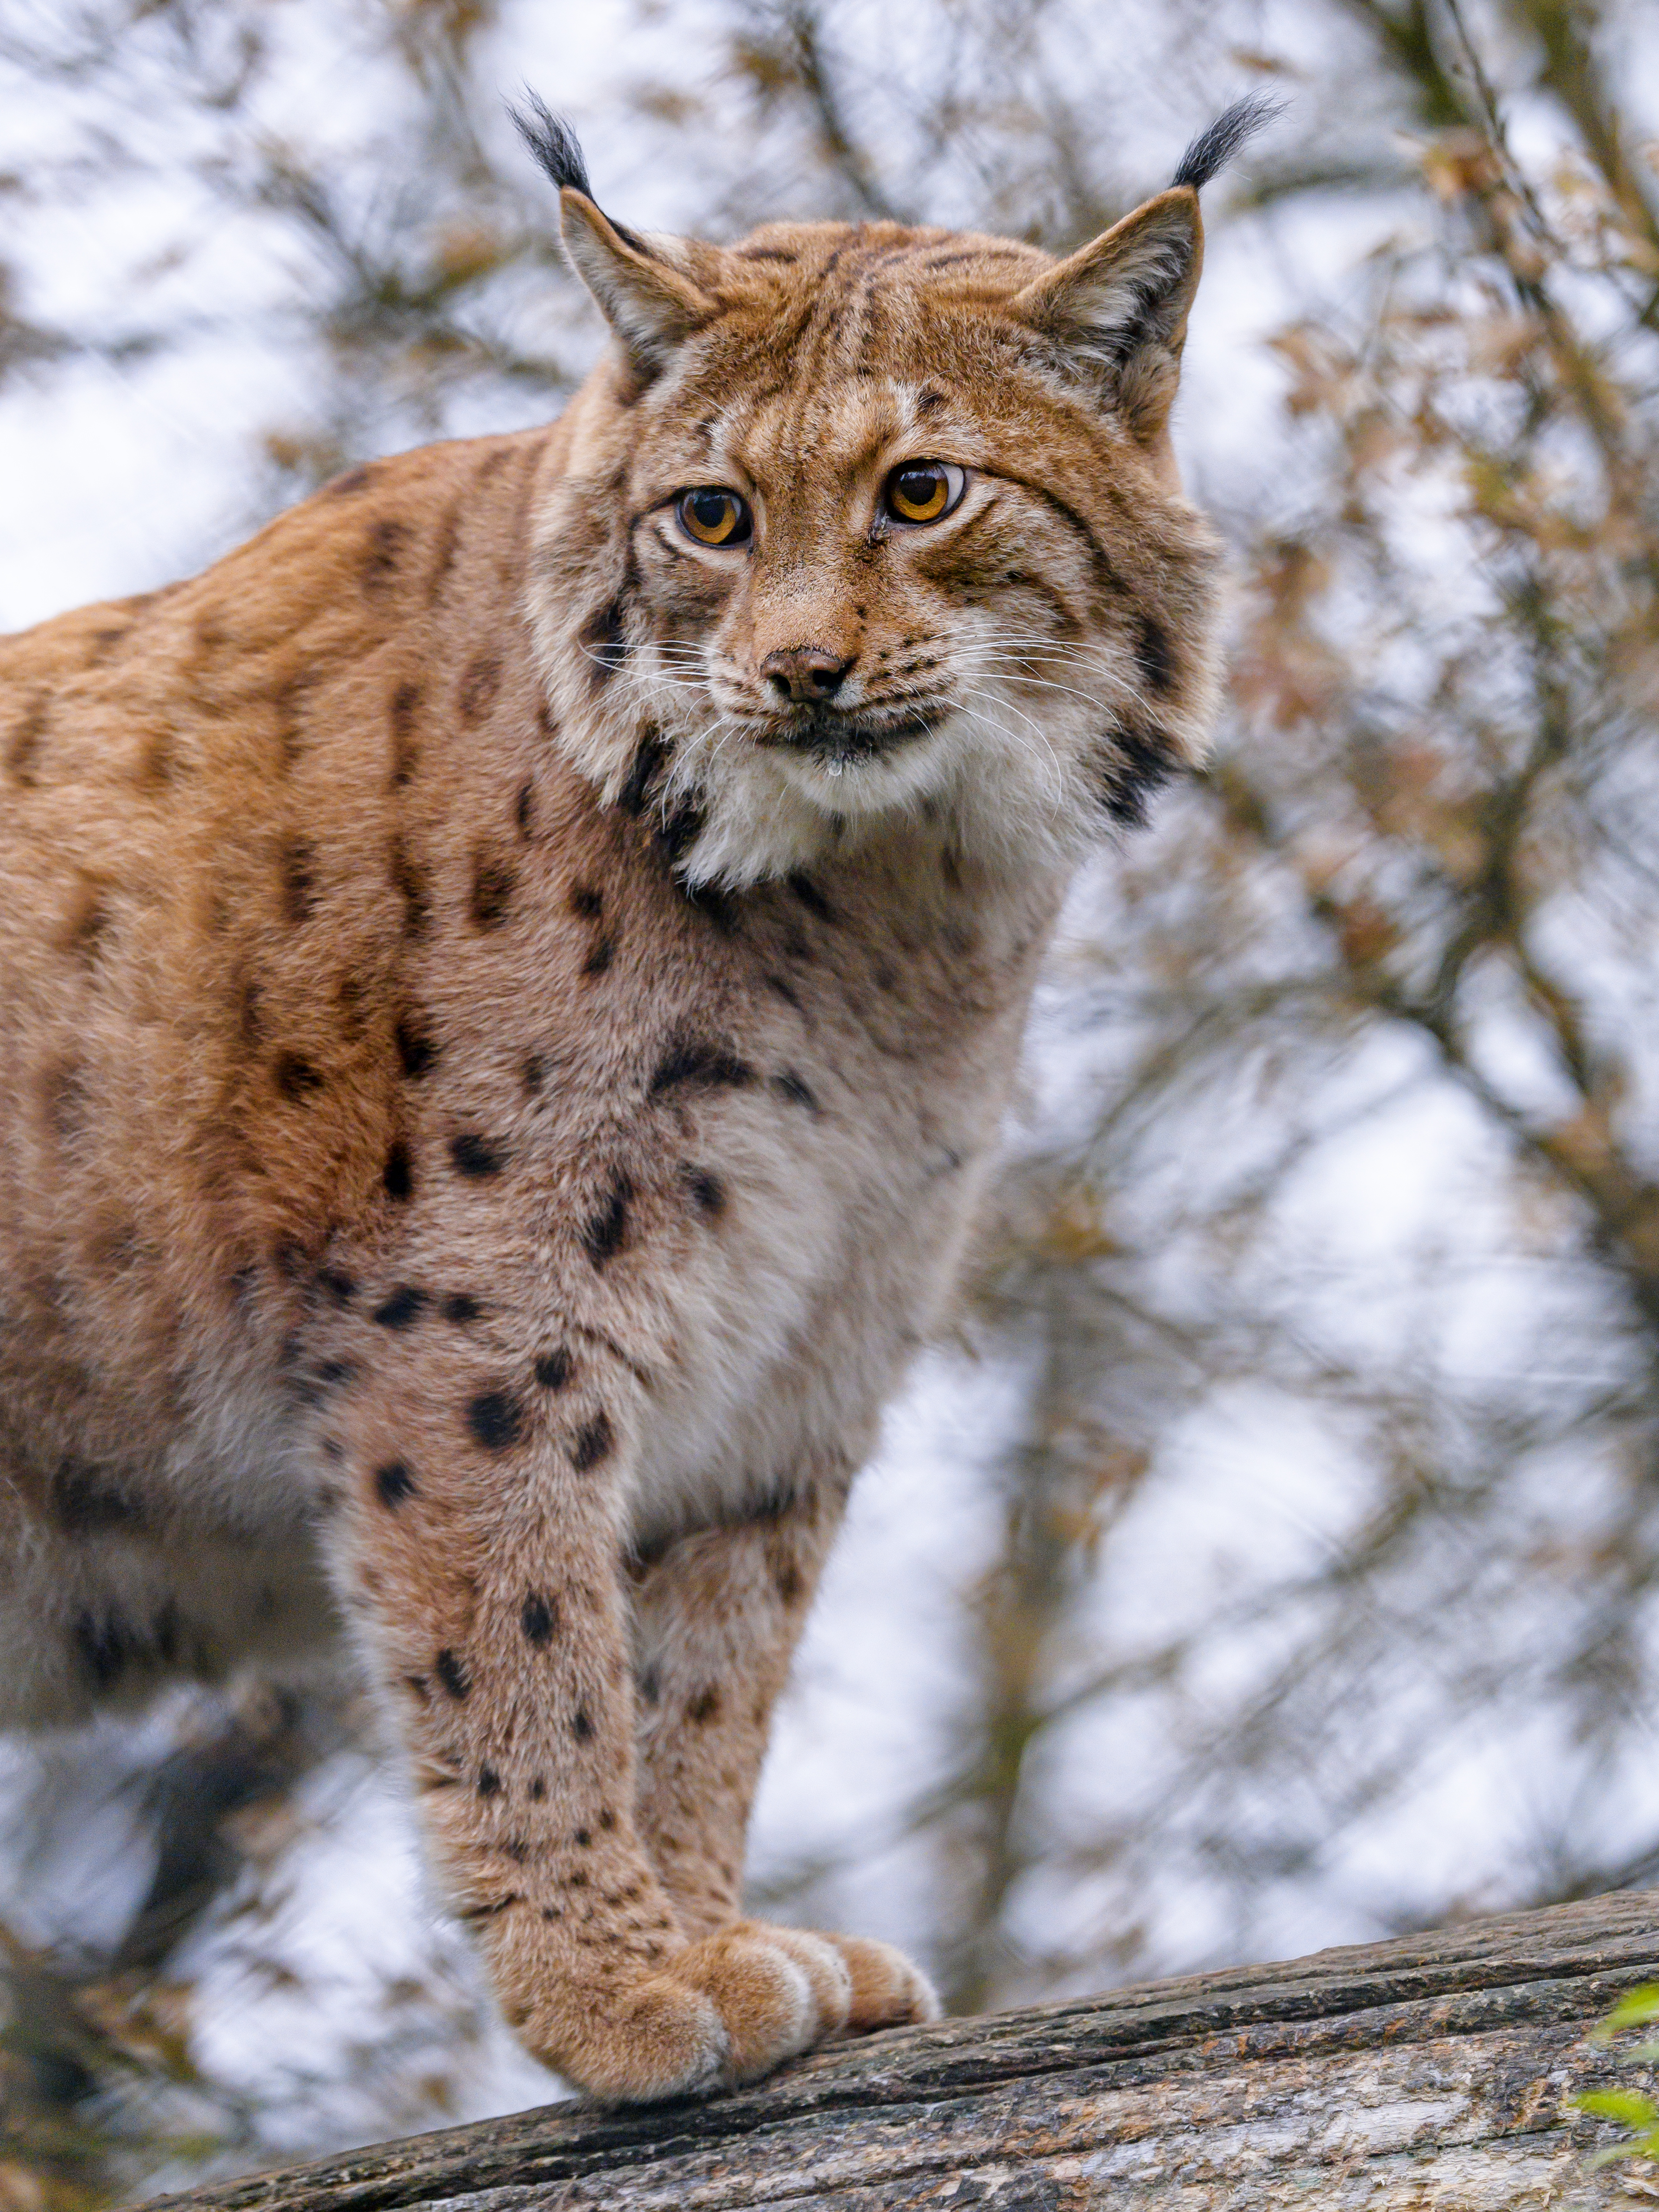 85050 download wallpaper Animals, Iris, Brown, Big Cat, Wildlife, Animal screensavers and pictures for free